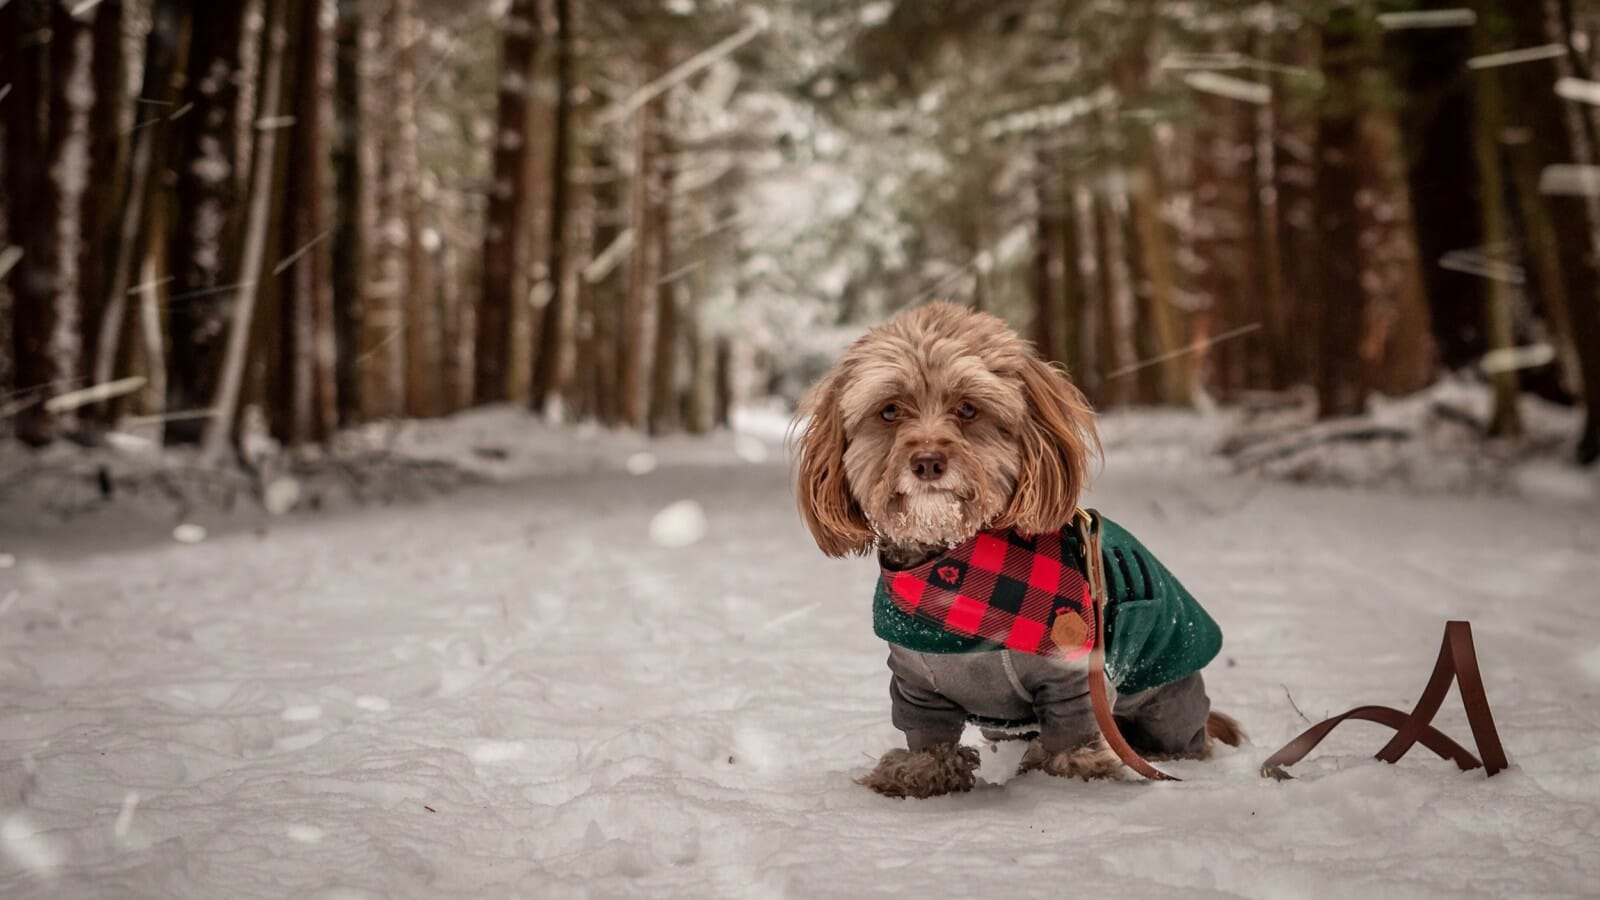 Small dog in a coat standing on a snowy forest path